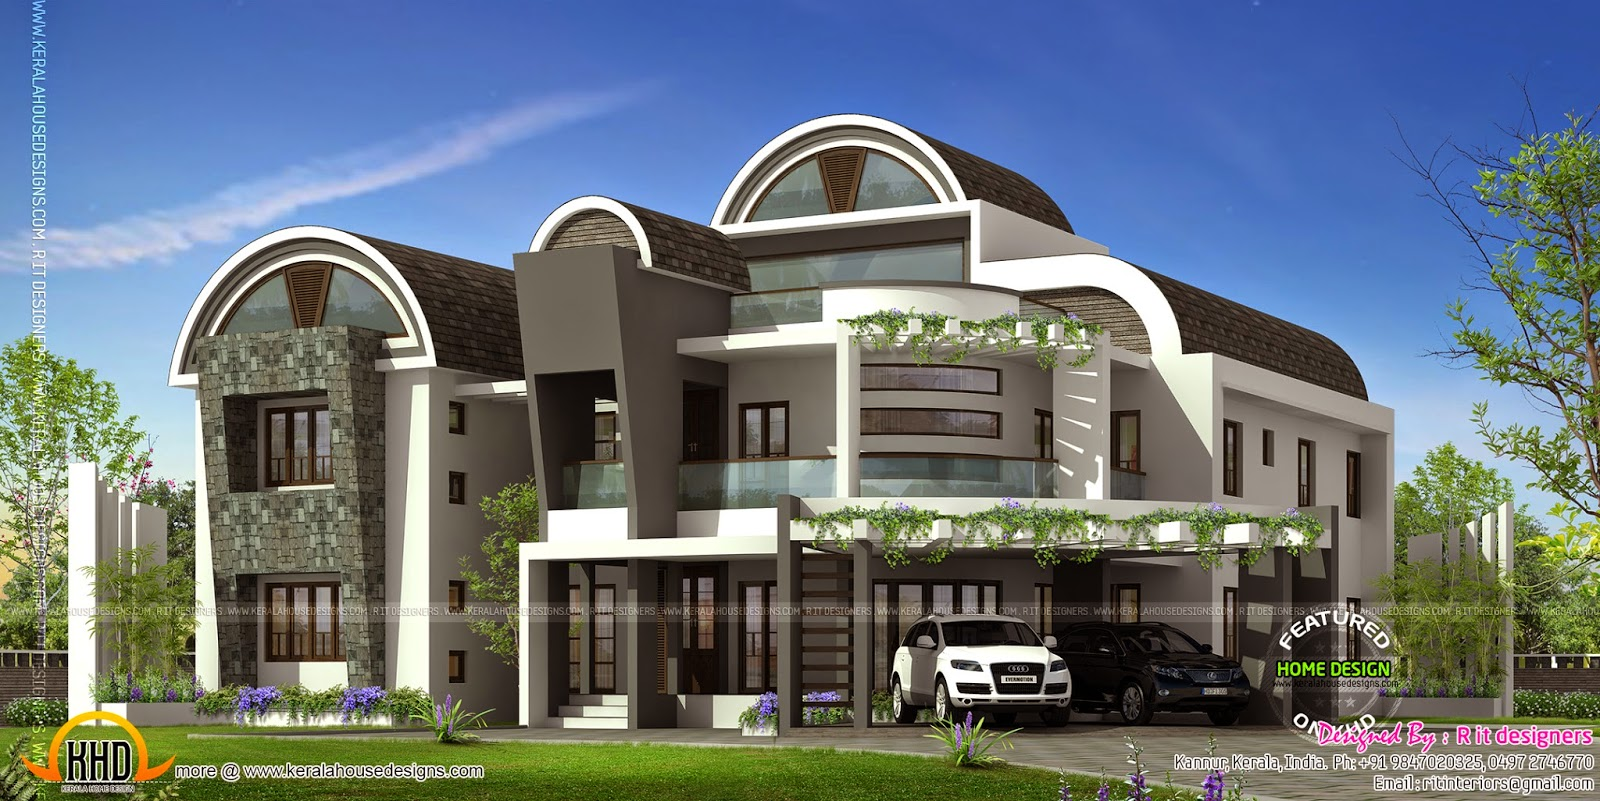 Plans modern bungalow house plans africa l